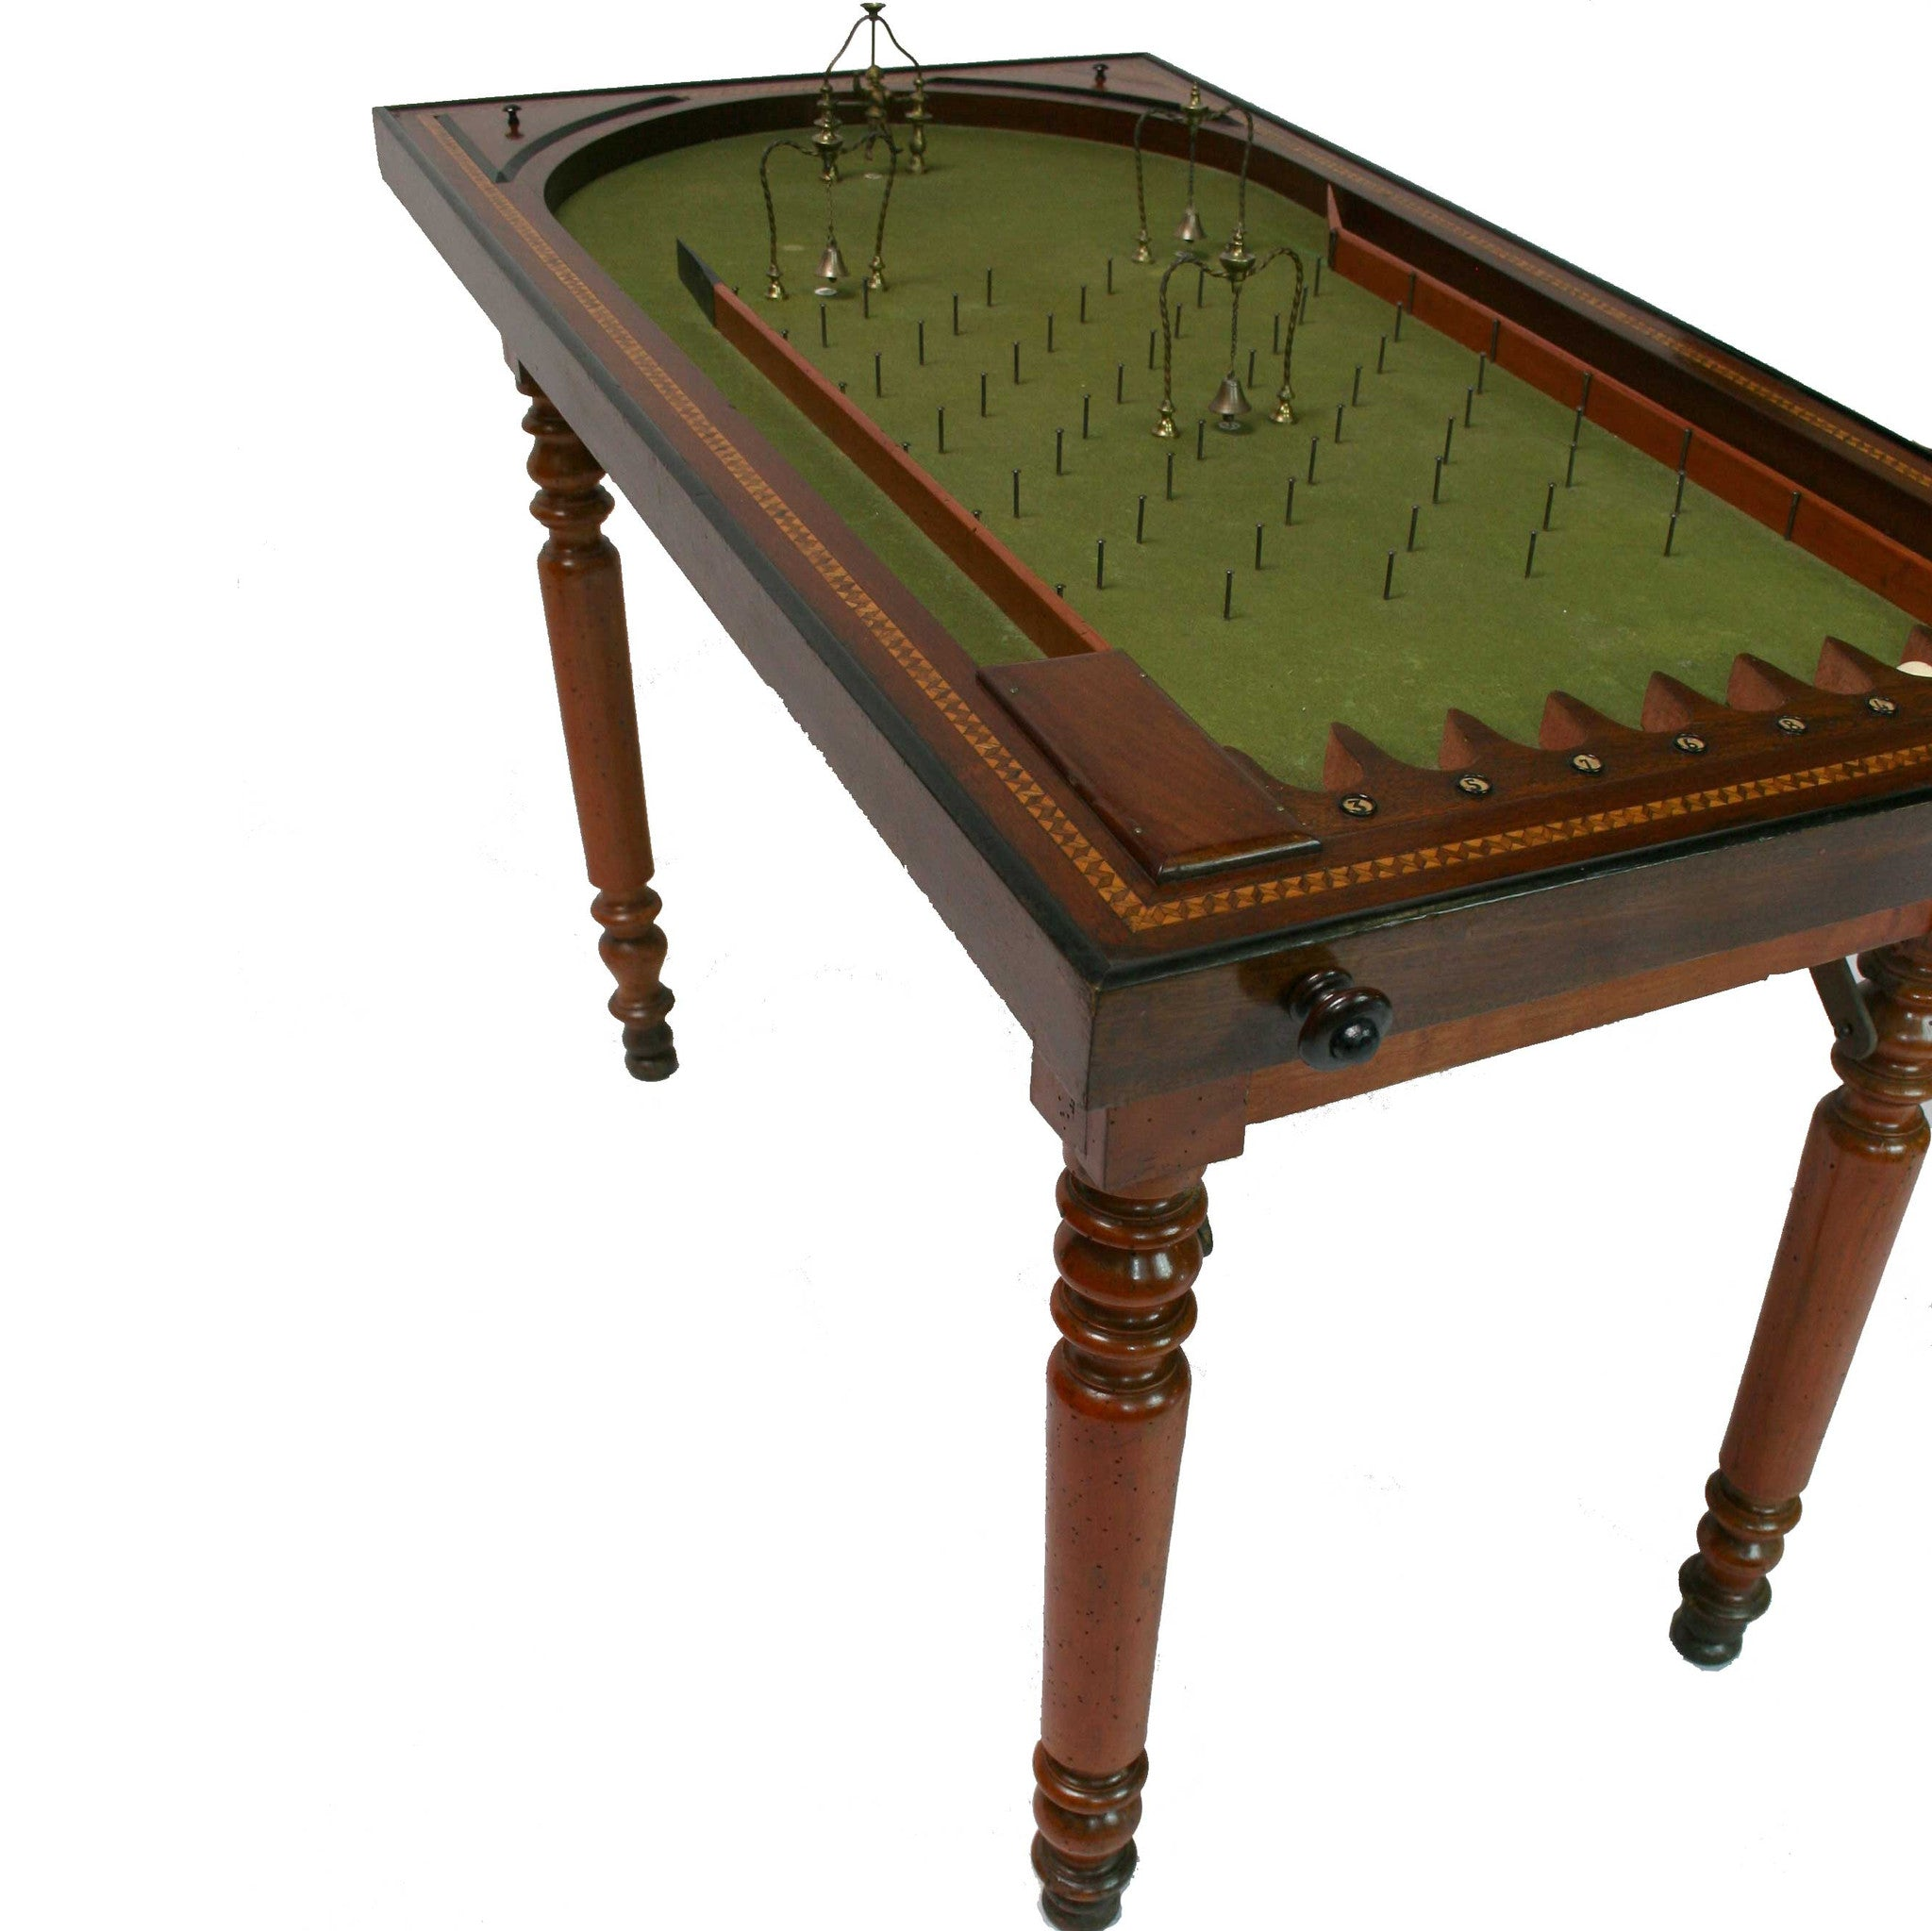 Rare 19th century Pinball Table Fatto a Mano Antiques